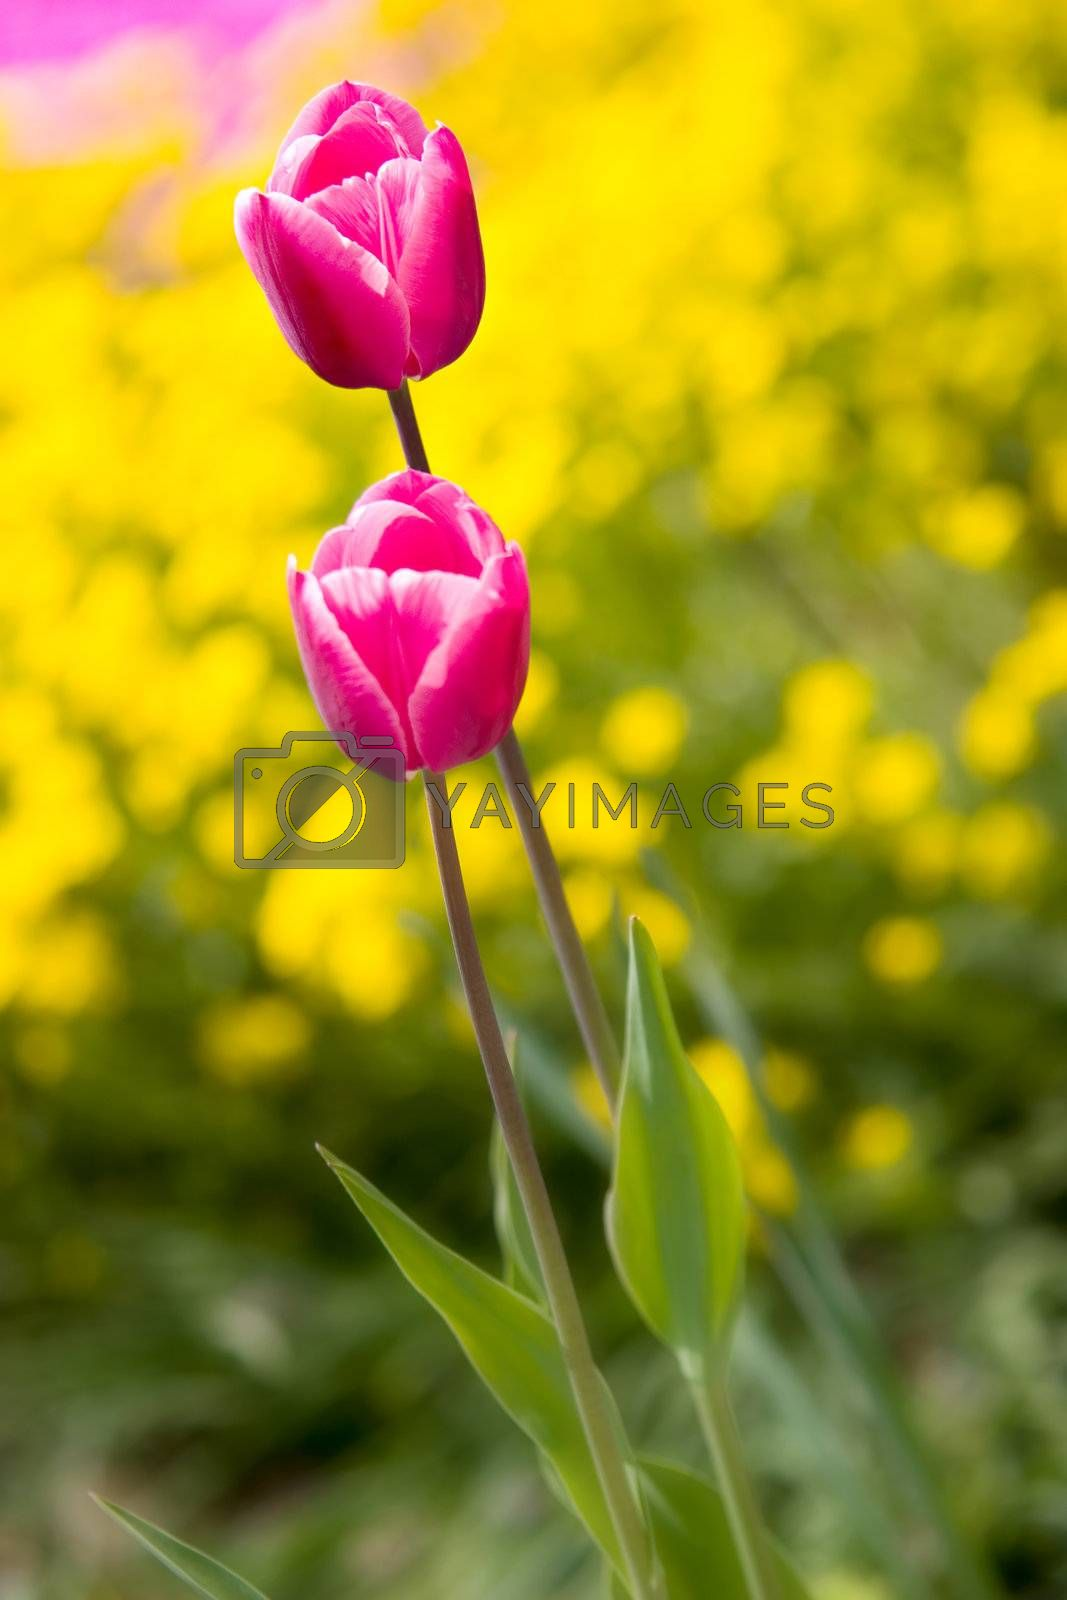 Two tulips in a garden with vivid colors.